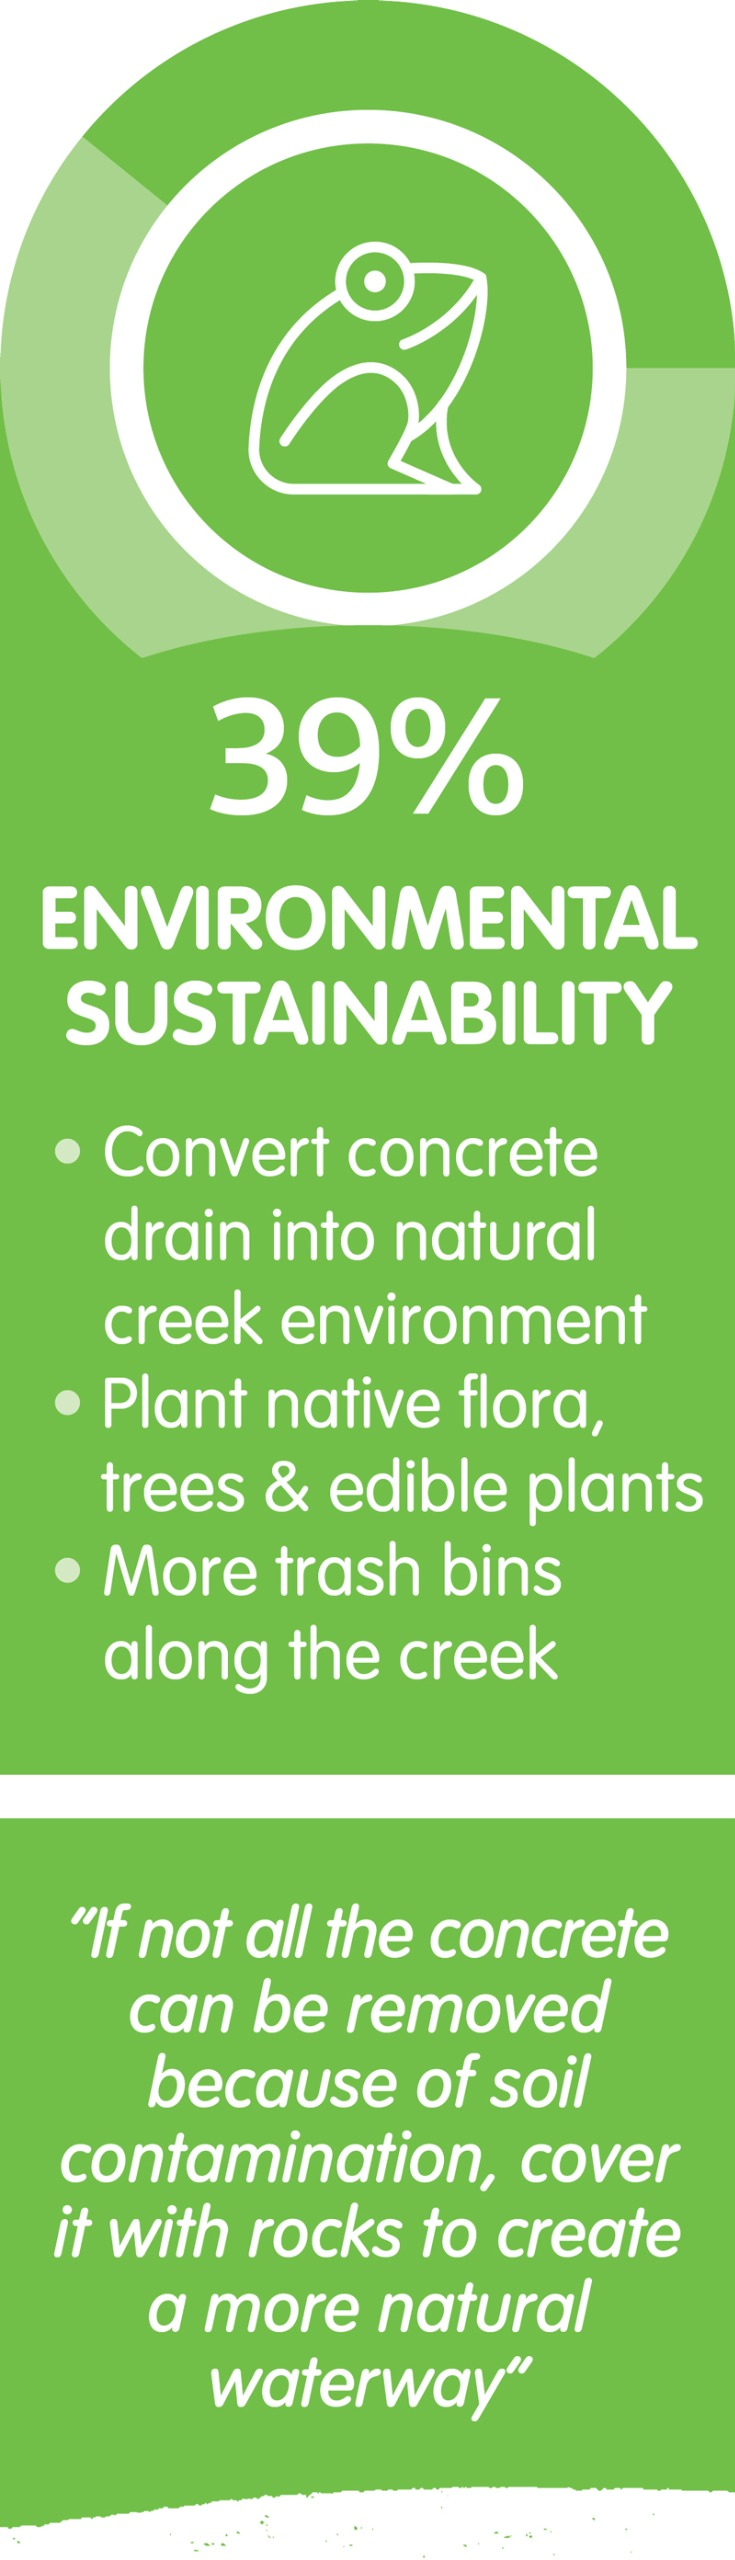 39 per cent of respondents supported environmental sustainability